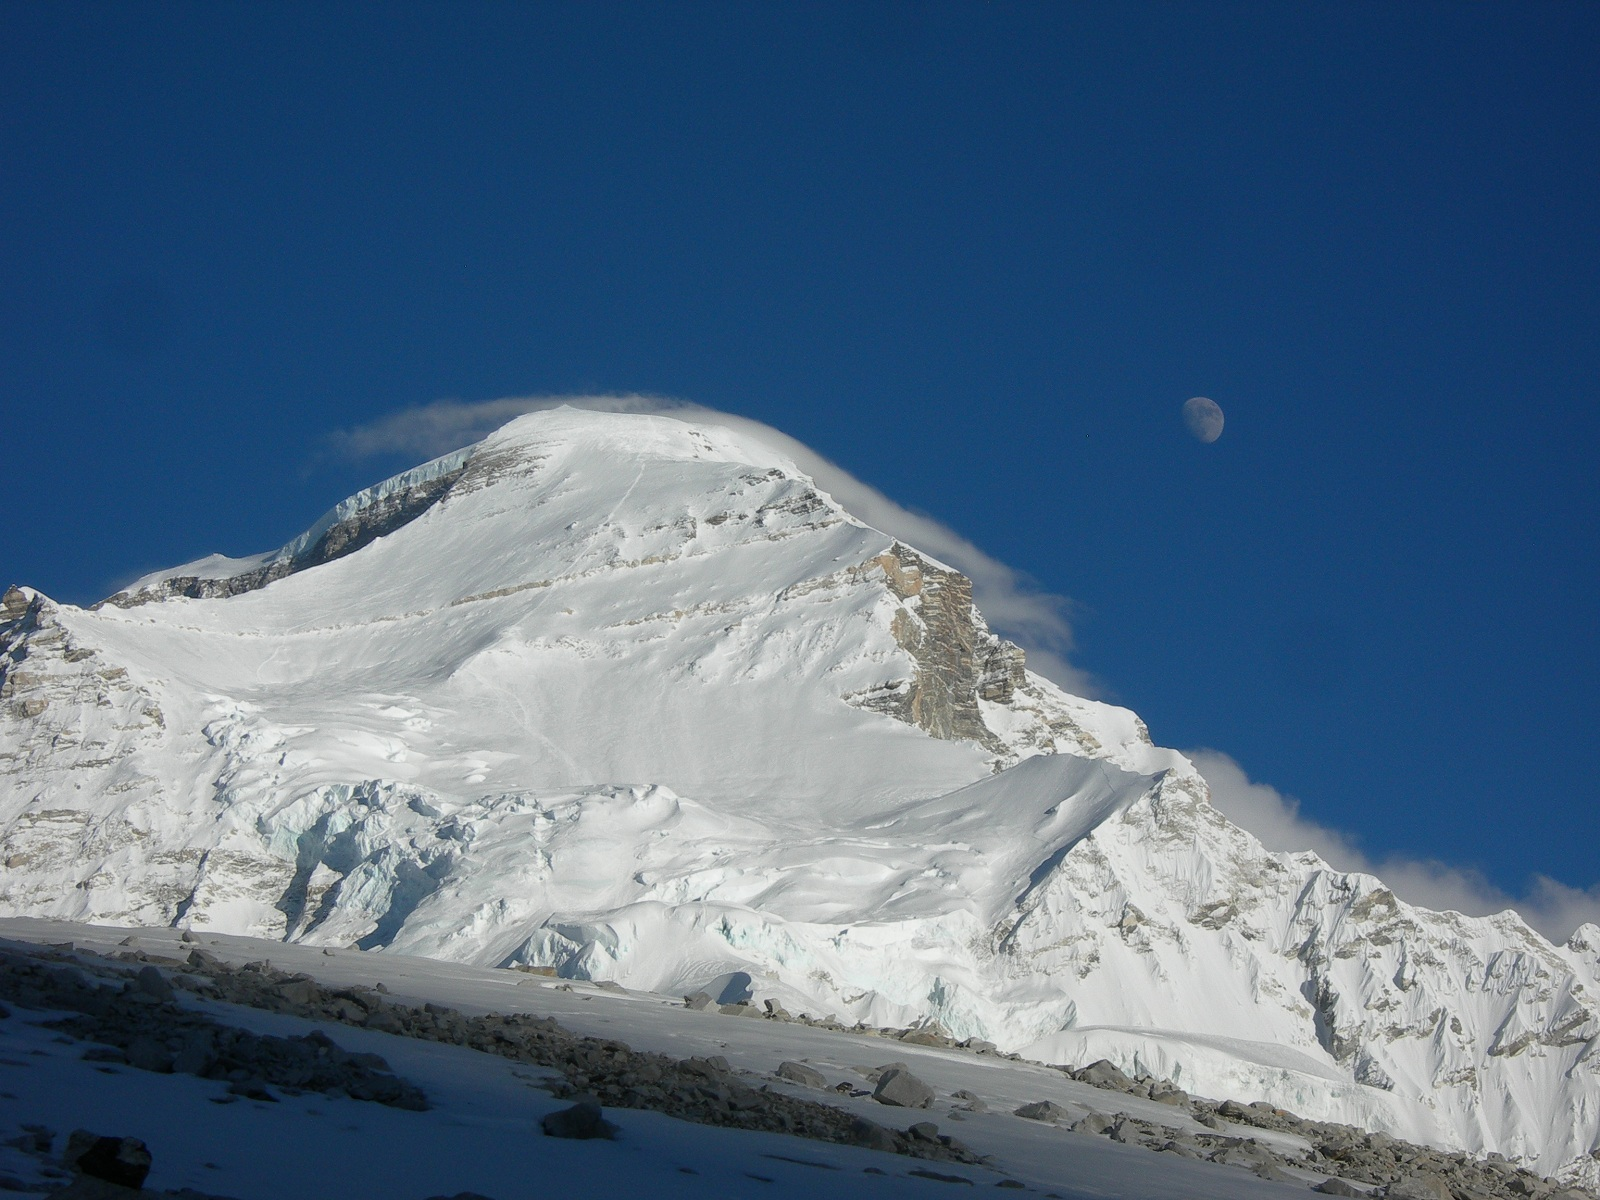 Tallest Mountains, Cho Oyu, Himalayas, The Moon watching the peak